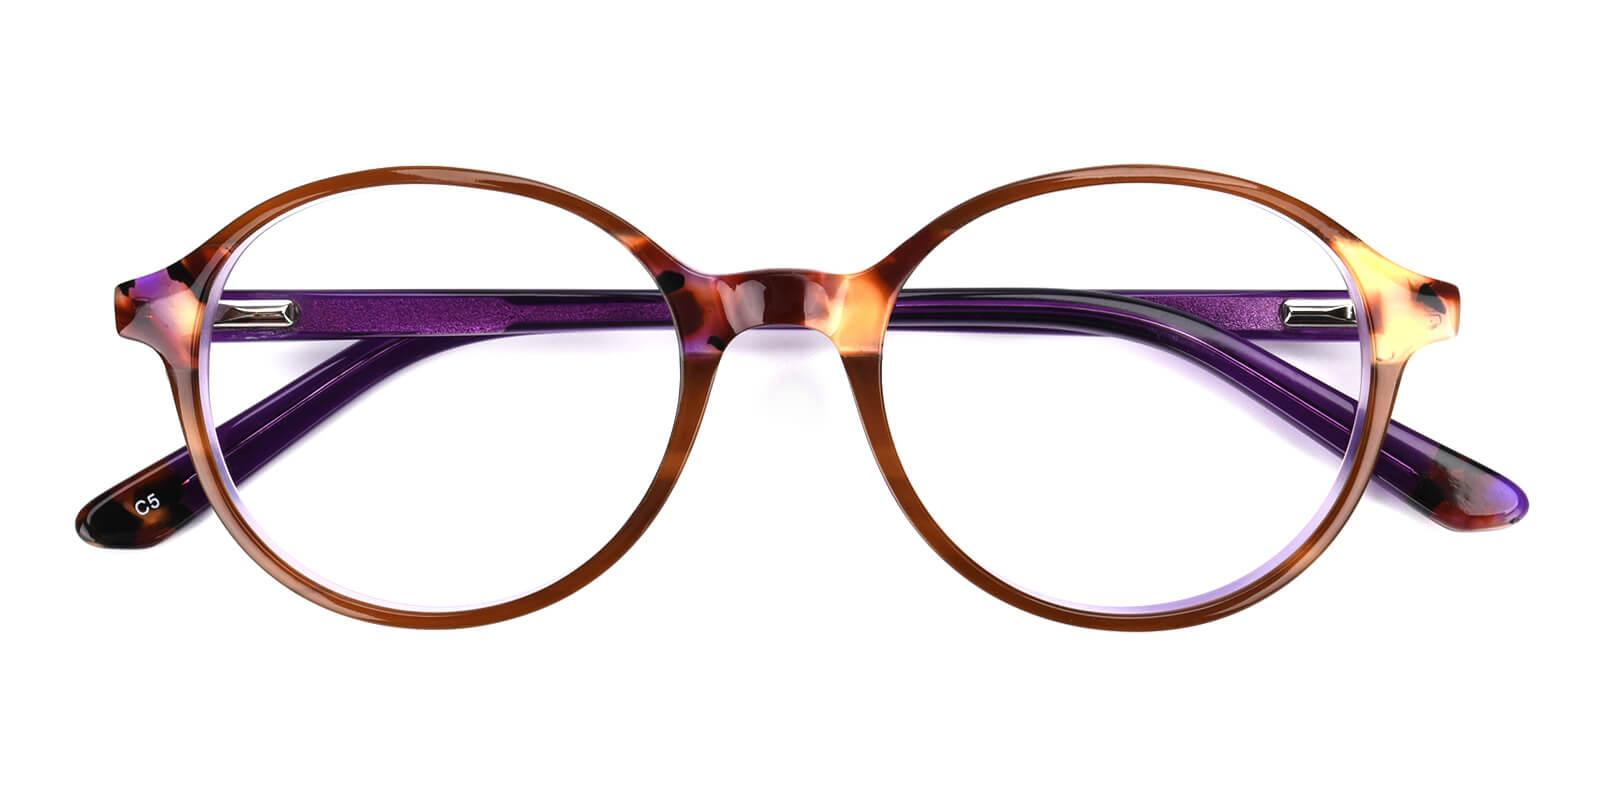 Giselle-Purple-Oval-Acetate-Eyeglasses-detail